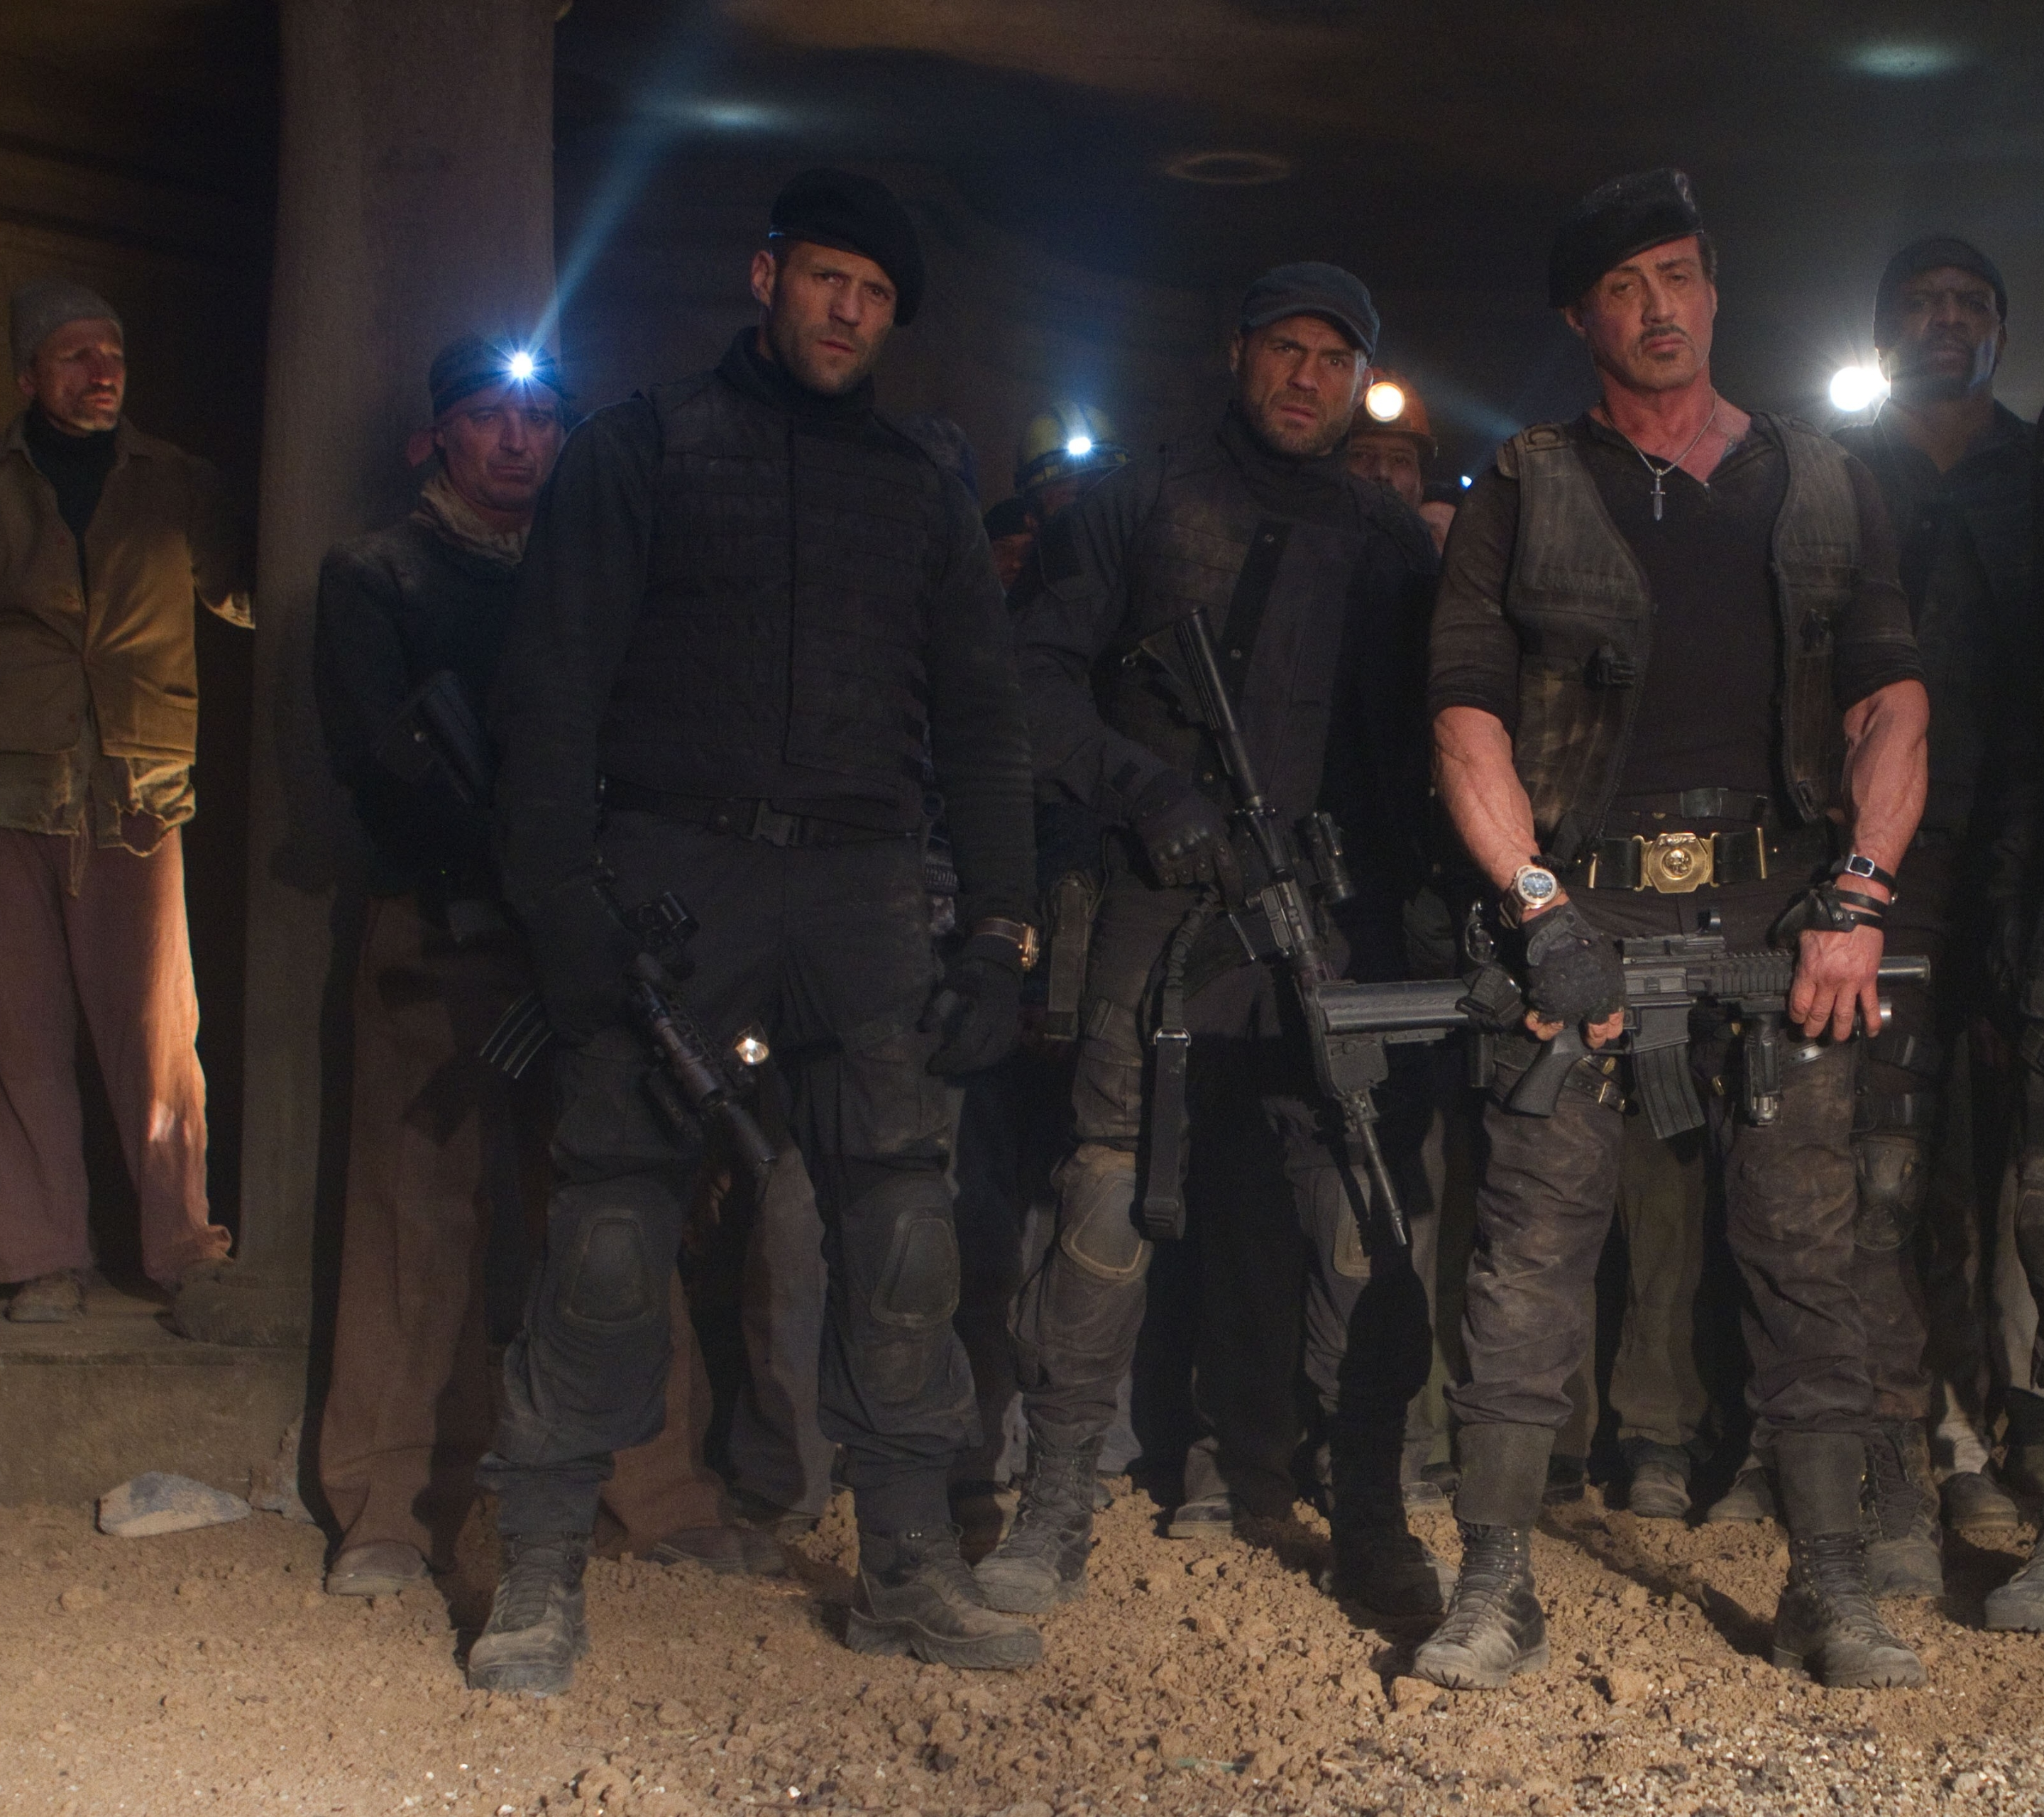 movie/the expendables 2 (2880x2560) wallpaper id: 657286 - mobile abyss